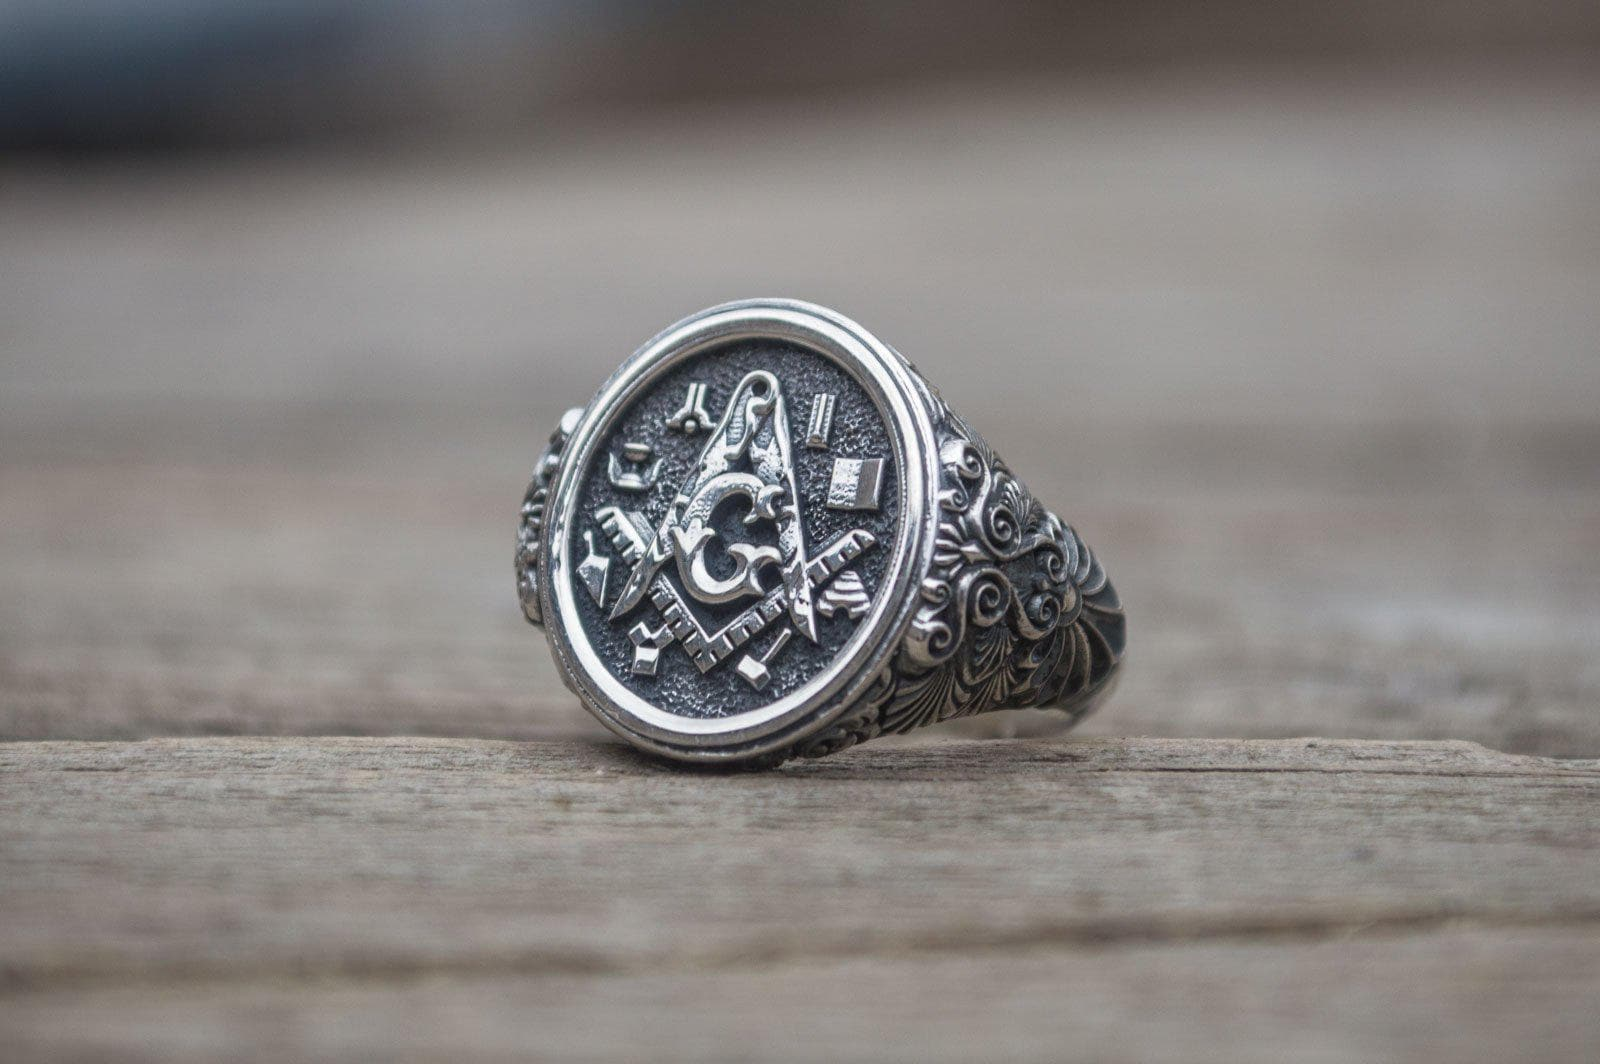 Rings Freemason Sterling Silver Handcrafted Ring with Masonic Symbols Ancient Treasures Ancientreasures Viking Odin Thor Mjolnir Celtic Ancient Egypt Norse Norse Mythology